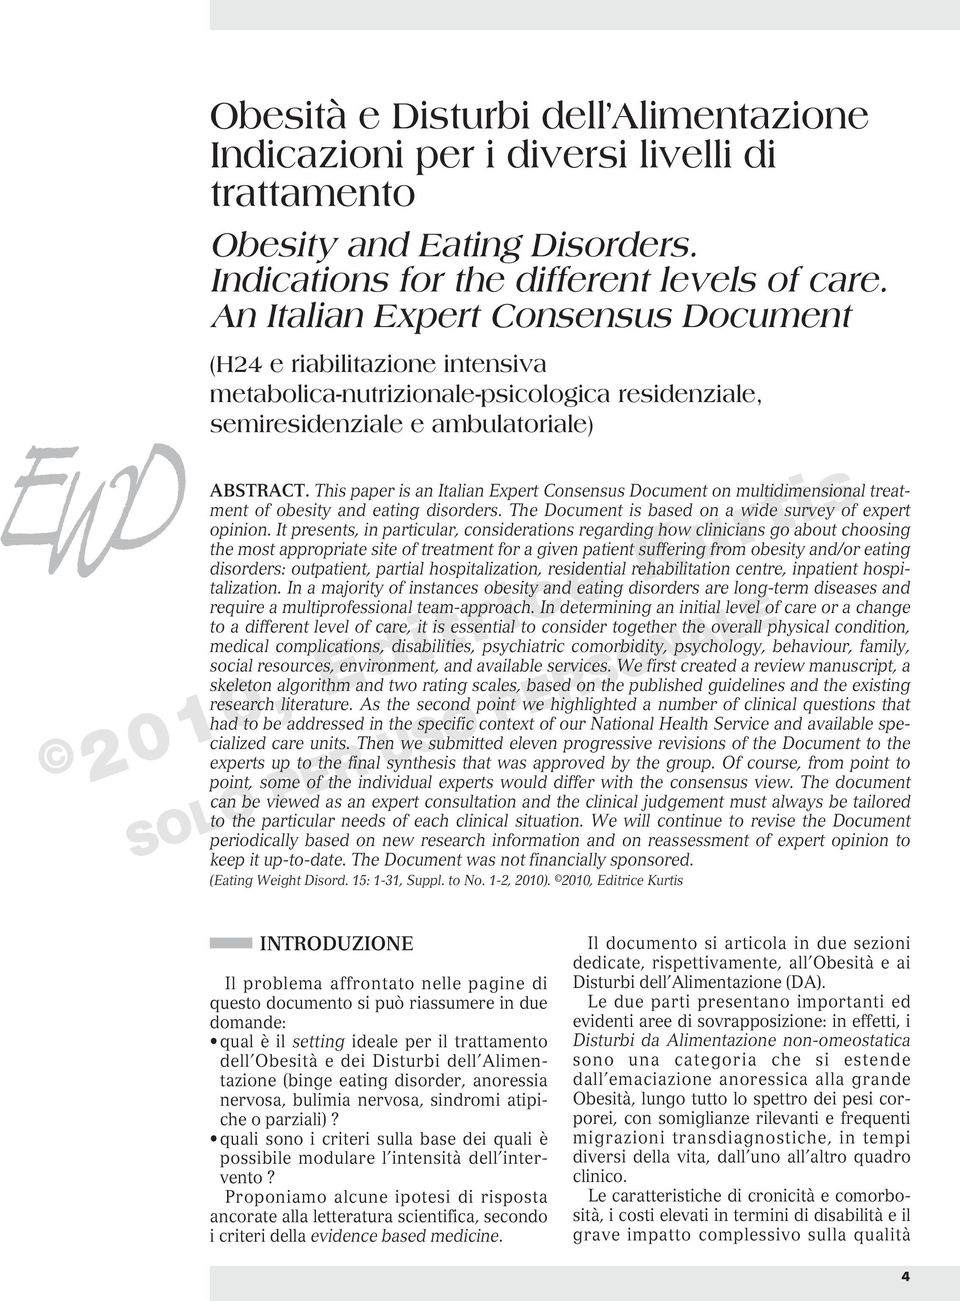 This paper is an Italian Expert Consensus Document on multidimensional treatment of obesity and eating disorders. The Document is based on a wide survey of expert opinion.